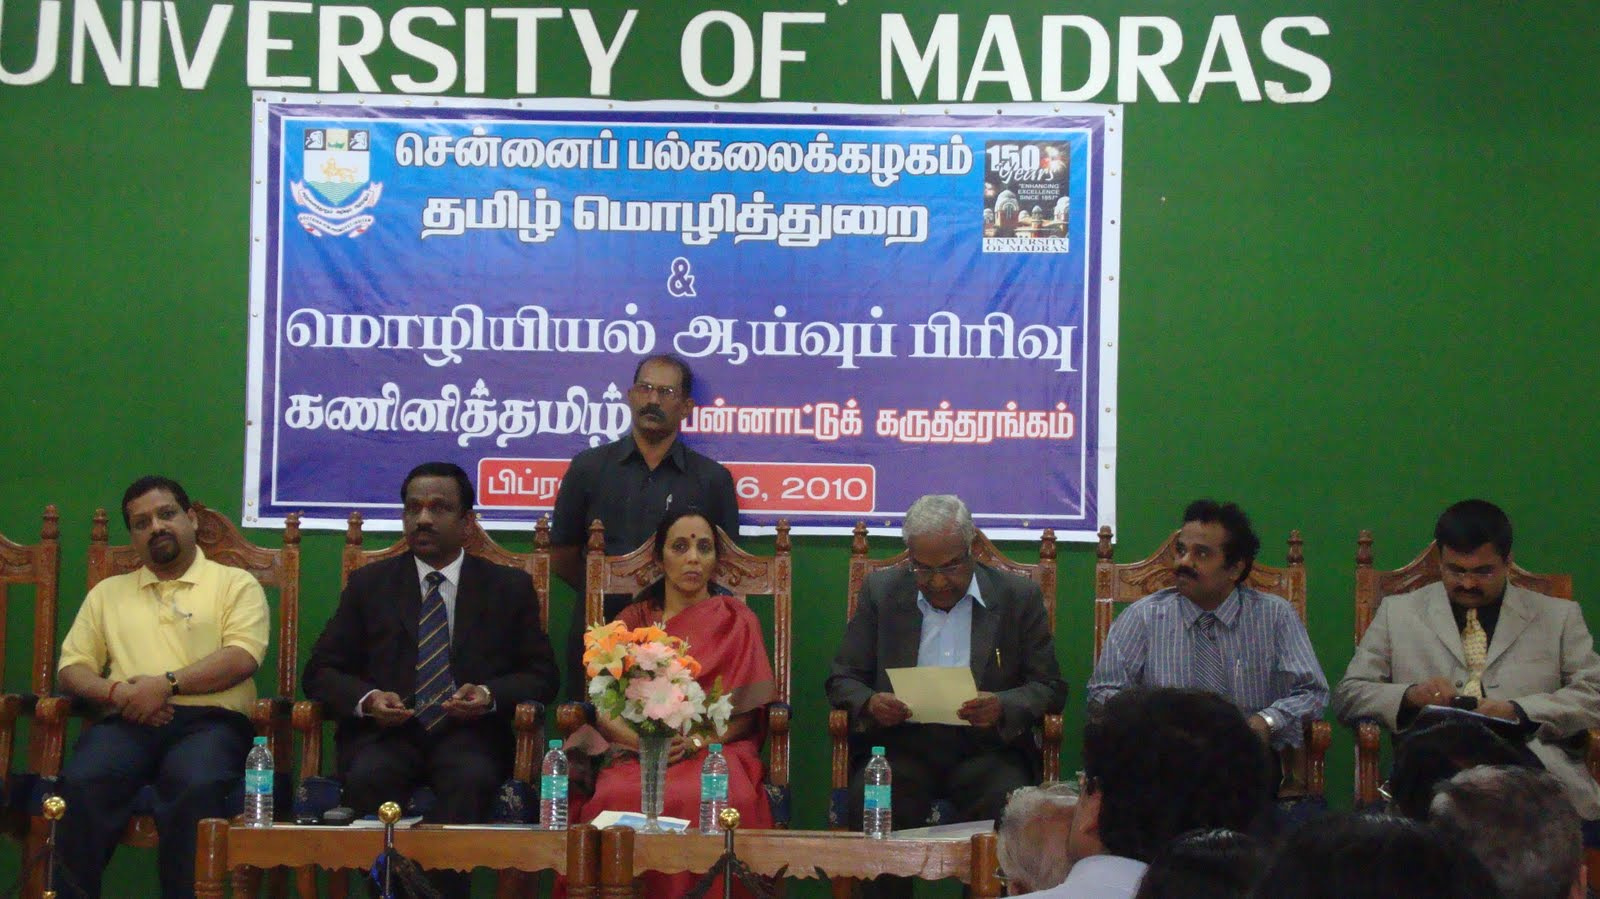 Dr. Niladri Sekhar Dash (Indian Statistical Institute), Col. Dr. G. Thiruvasagam (Vice Chancellor, University of Madras),Dr.Poongothai Aladi Aruna (Minister for Information Technology, Tamilnadu Government),Prof.M.Anandakrishnan (Chairman, IIT Kanpur), Dr.A.R. Sivakumaran (Professor, Nanyang Technological University, Singapore),T.N.C.Venkata Rangan (Chair, INFITT)